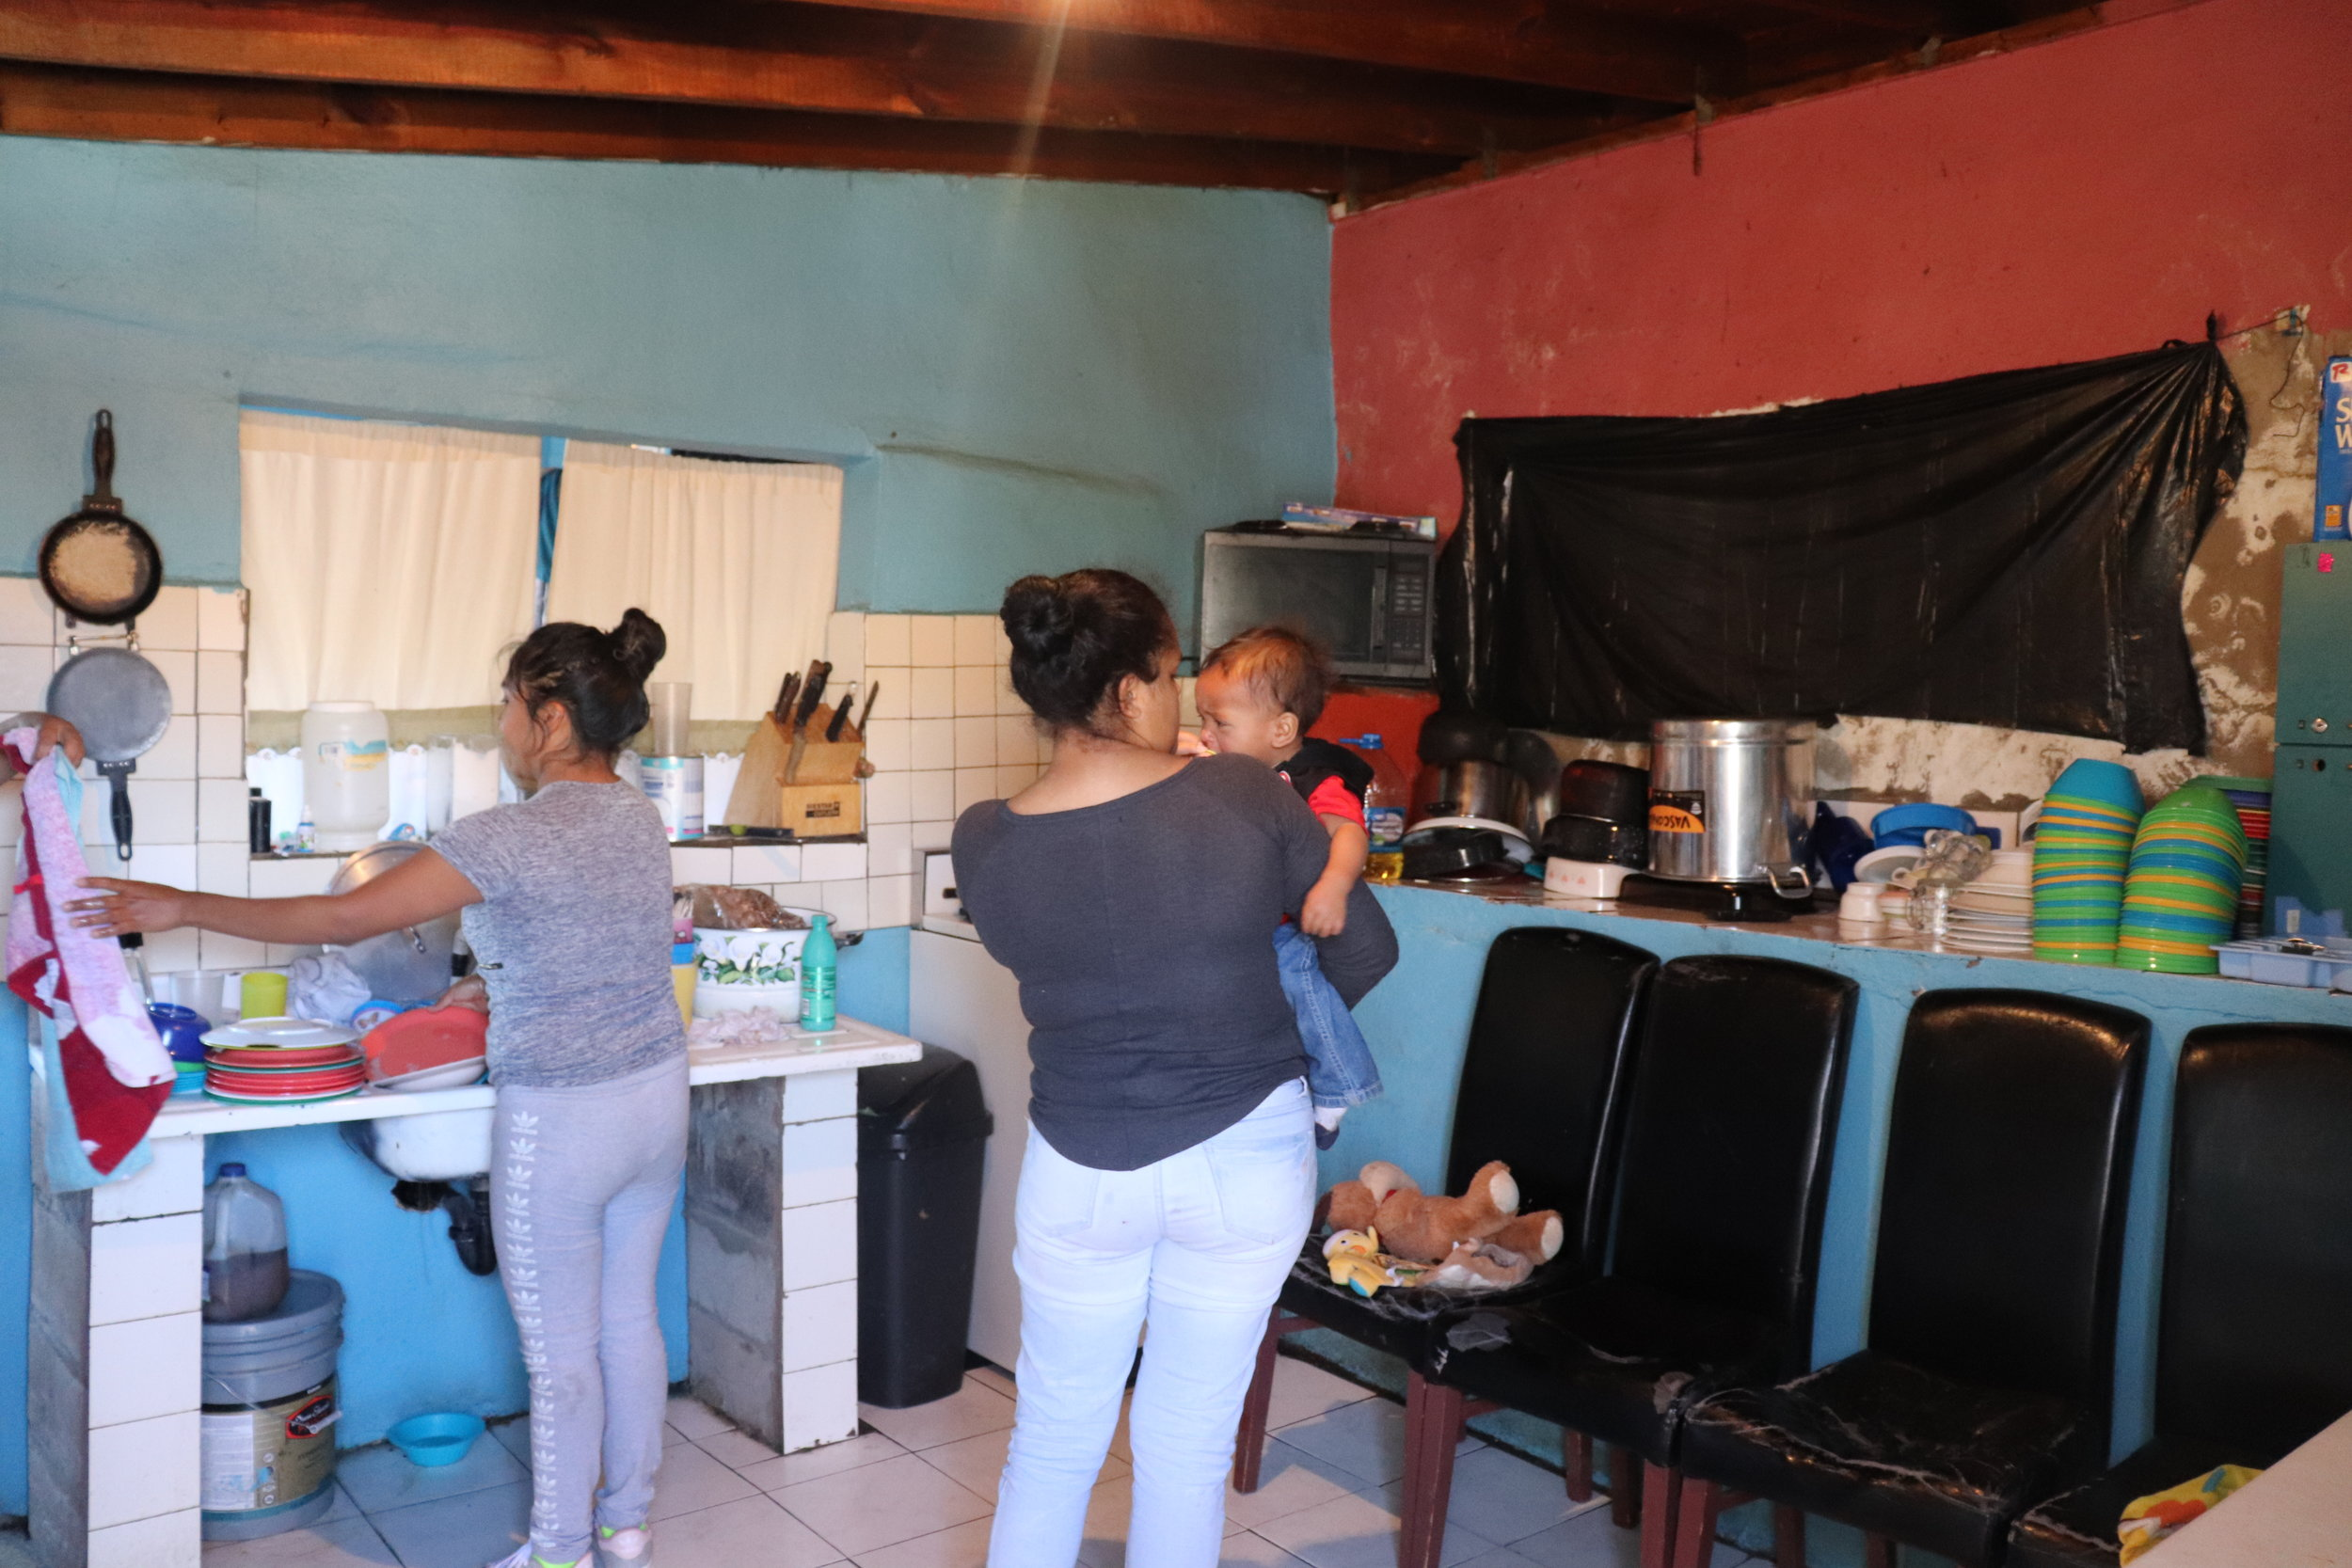 This is the kitchen at La Roca, all of the items are donated. Donations can be made to Cruzando Fronteras at this website: https://fronteras.azdiocese.org